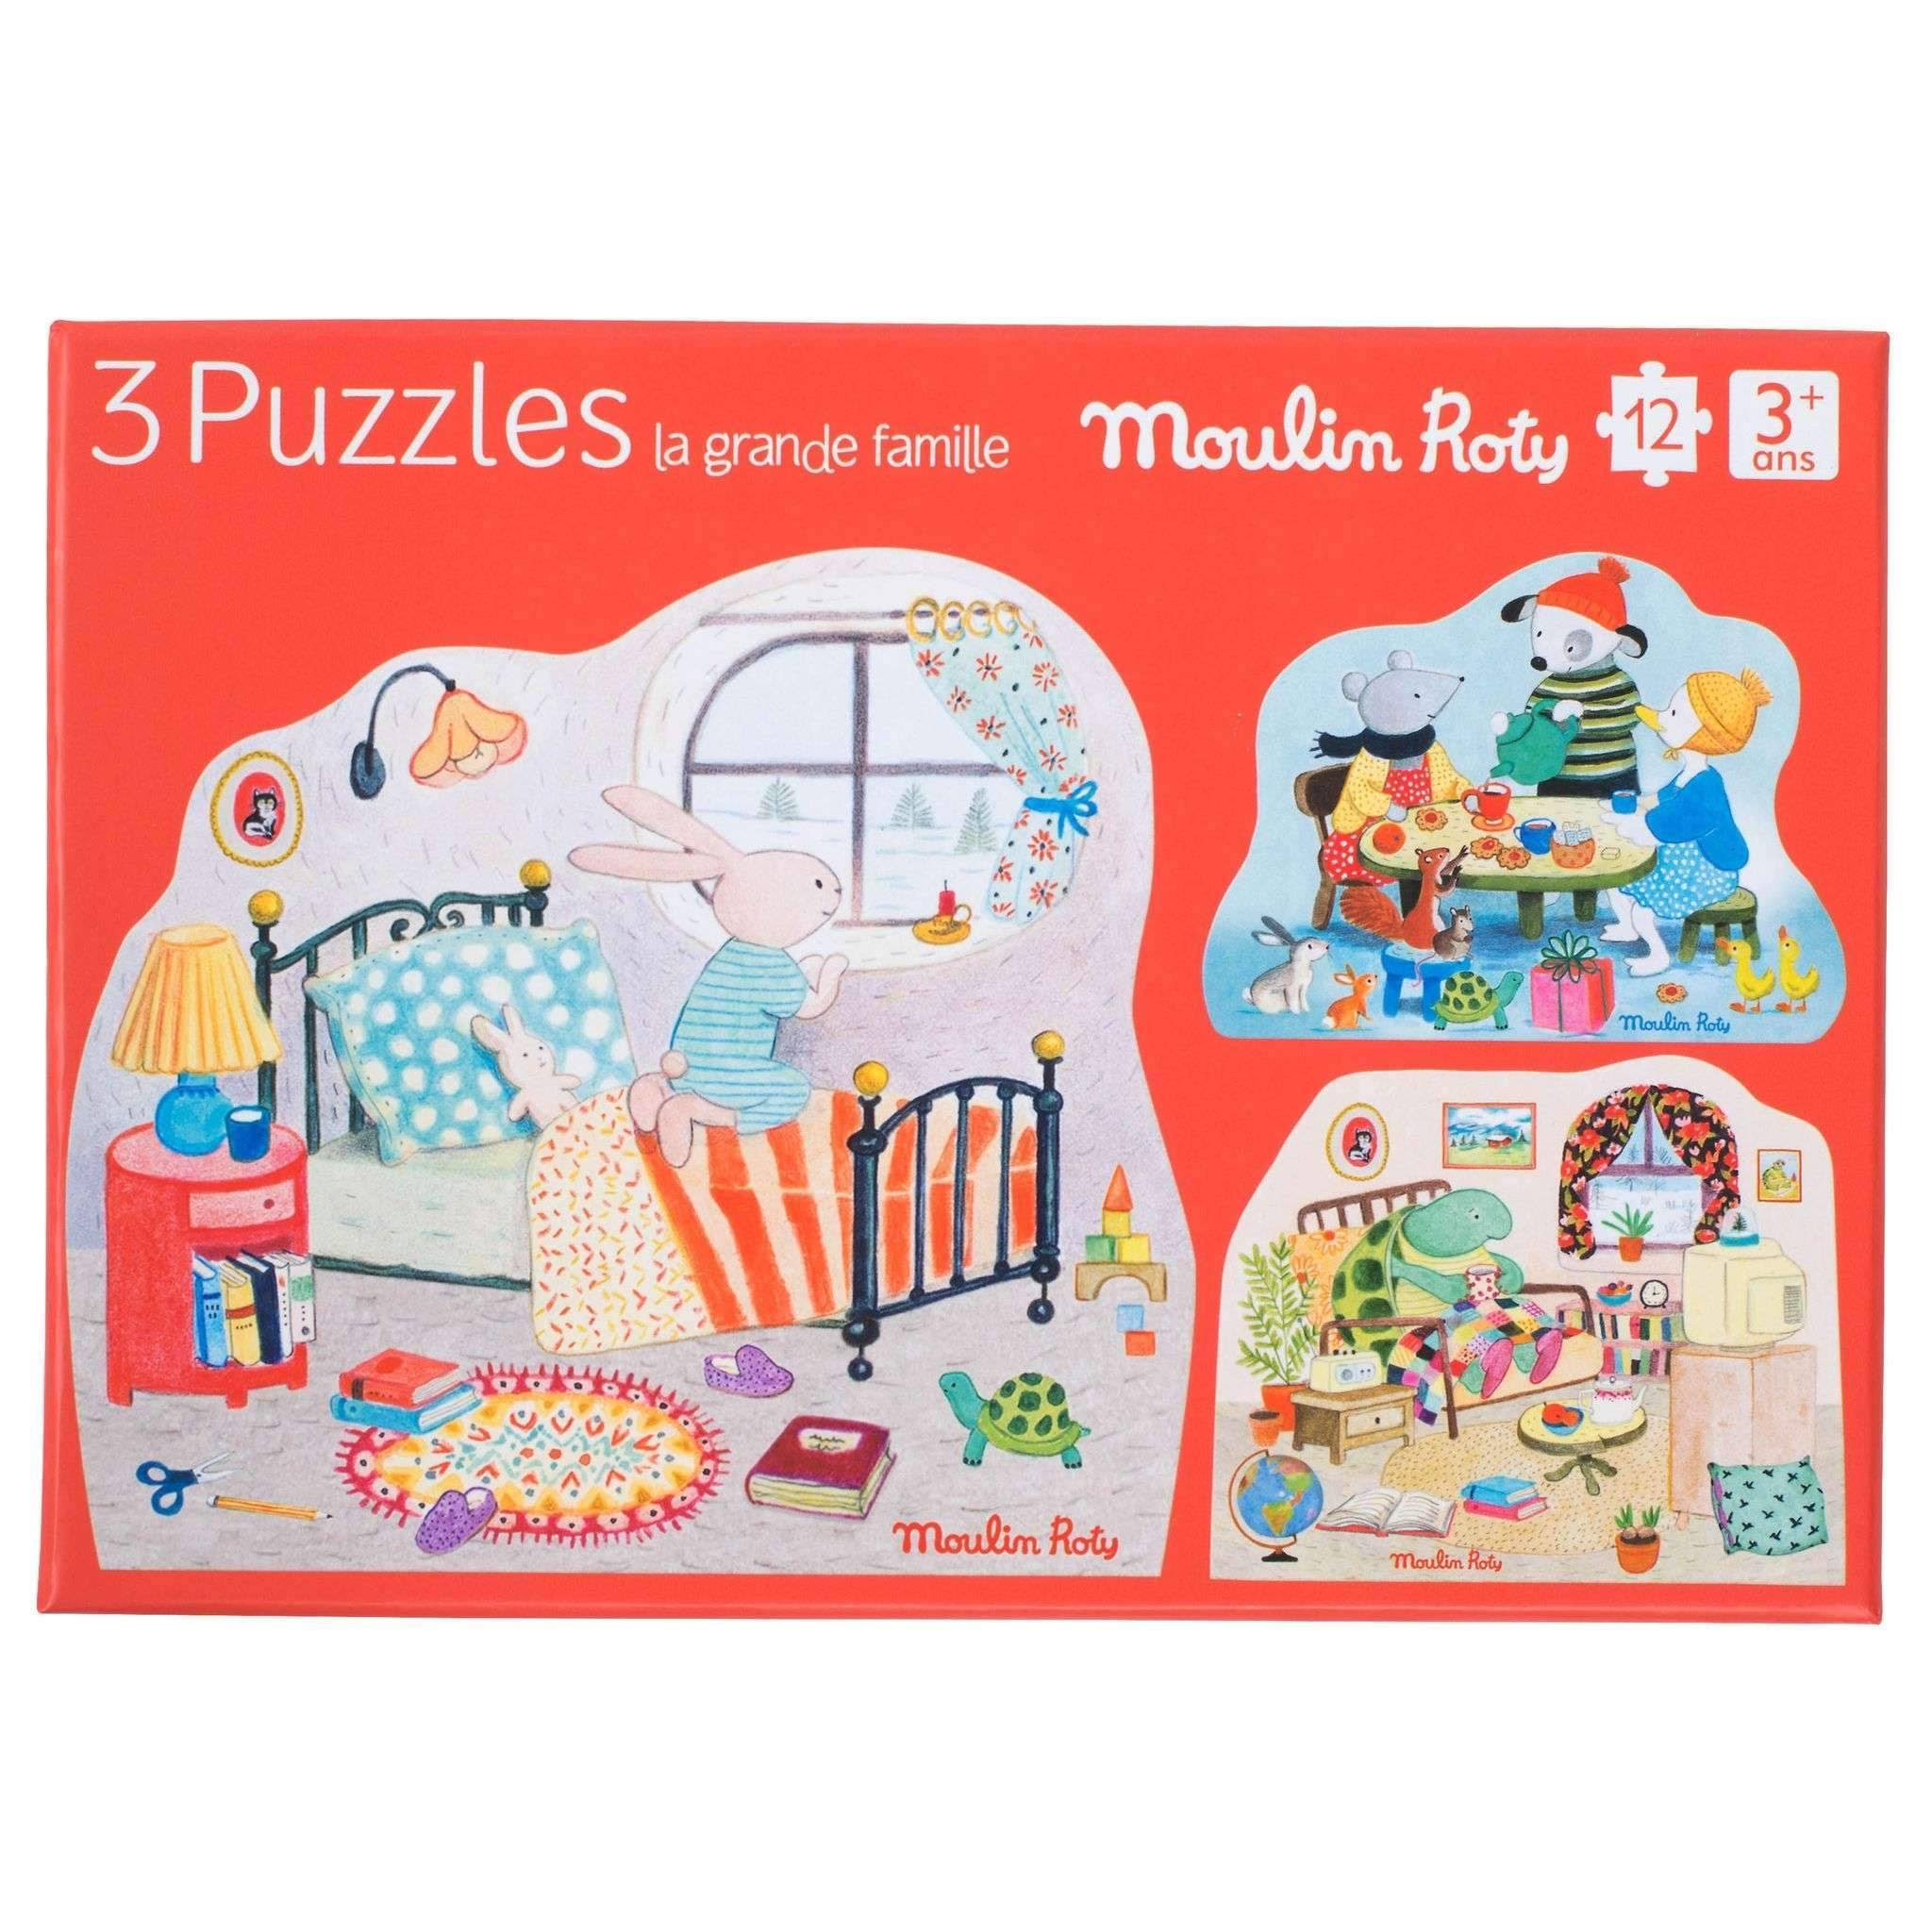 Moulin Roty La Grande Famille Jigsaw Puzzle - Set of 3, 12pc Puzzle